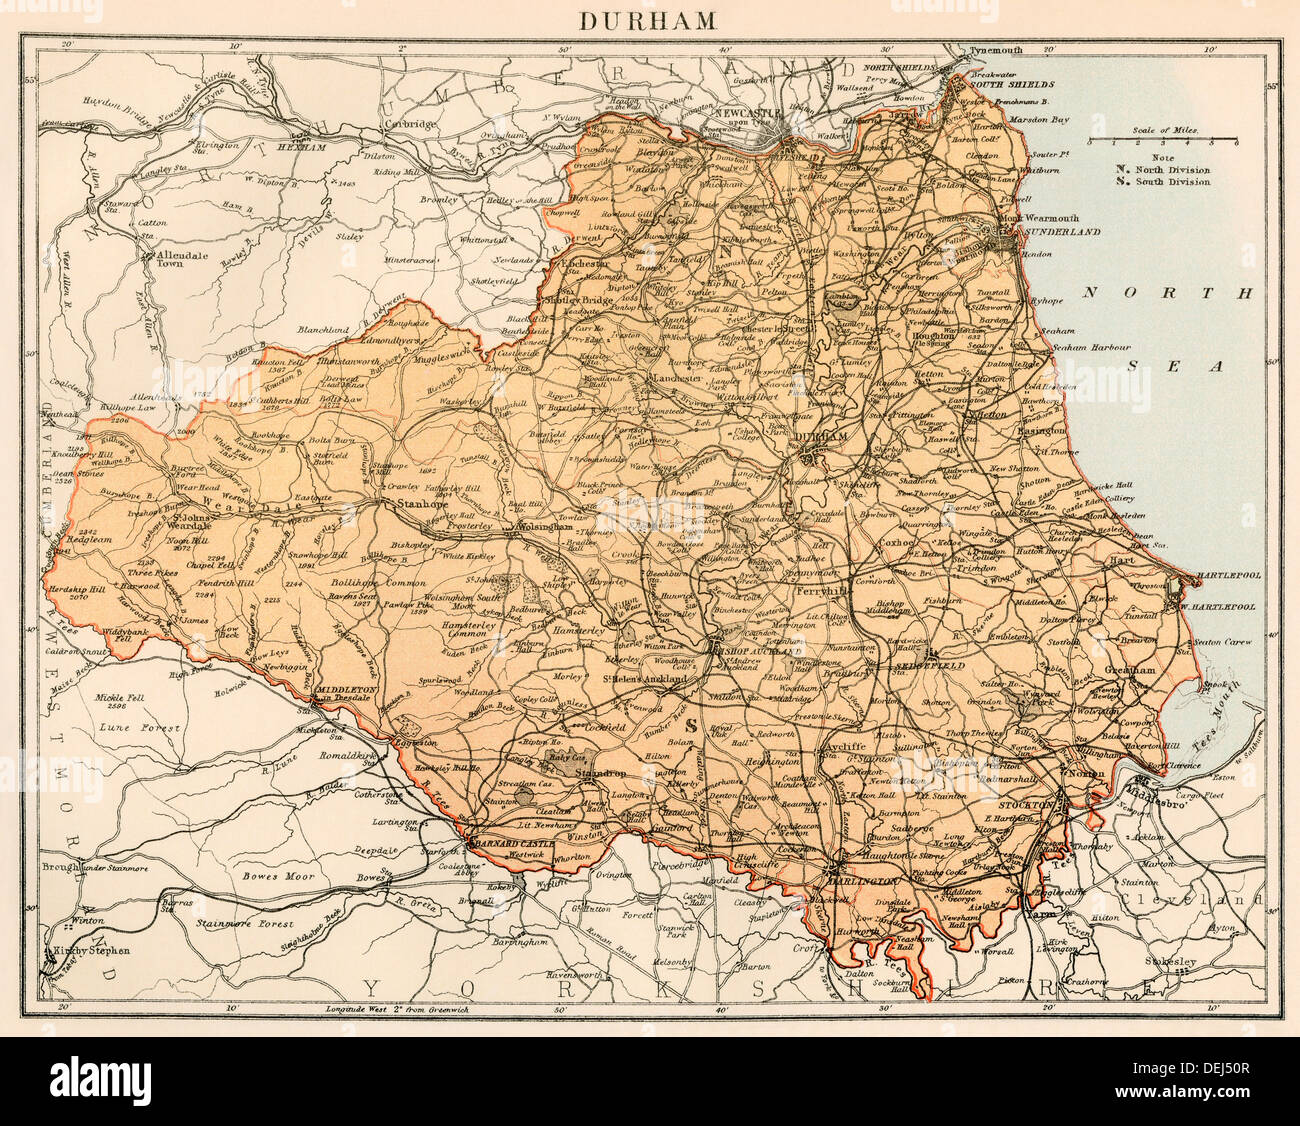 Map of Durham, England, 1870s. Color lithograph - Stock Image